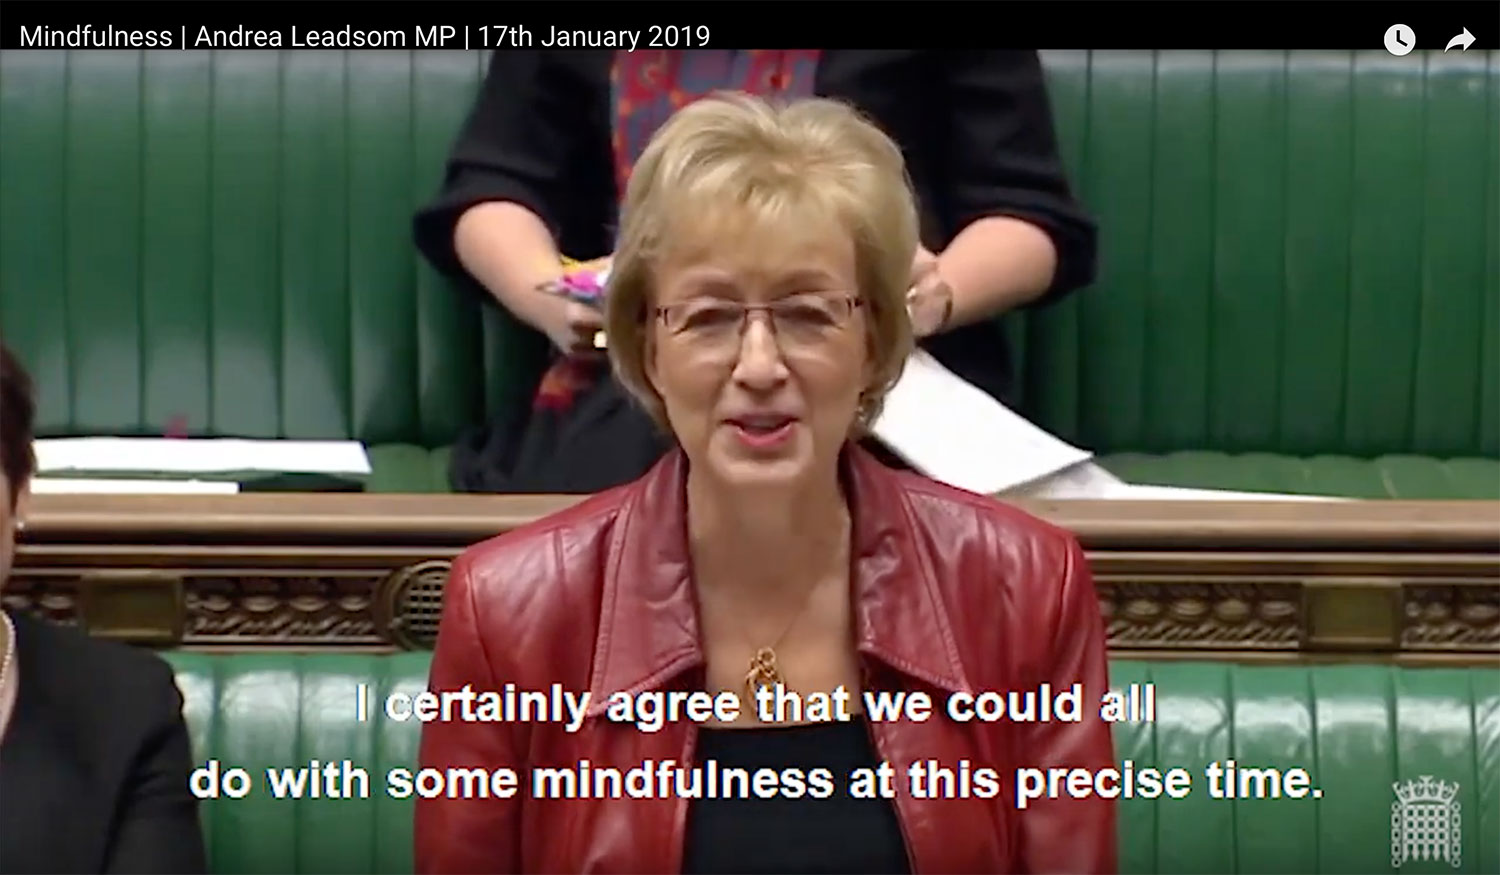 Andrea-Leadsom-MP-Mindfulness-Houses-of-Parliment-Discussion-1500pxl.jpg